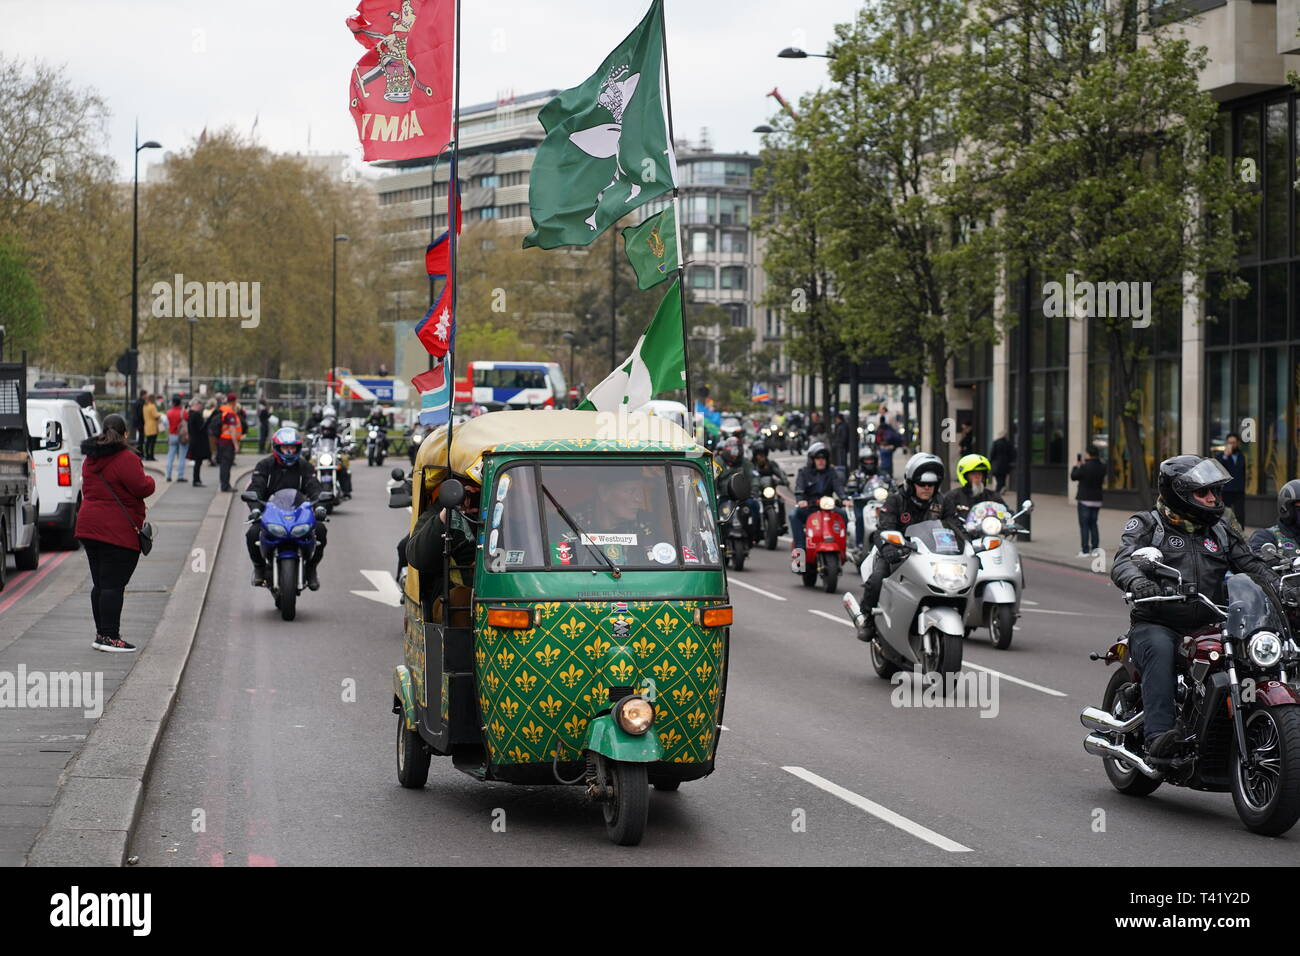 Thousands of bikers rode through London in support of Solider F who is facing prosecution for acts that took place in Northern Ireland in 1972.  The ride began at Hyde Park corner and travelled across Vauxhal Bridge along the embankment and to Parliament Square. - Stock Image